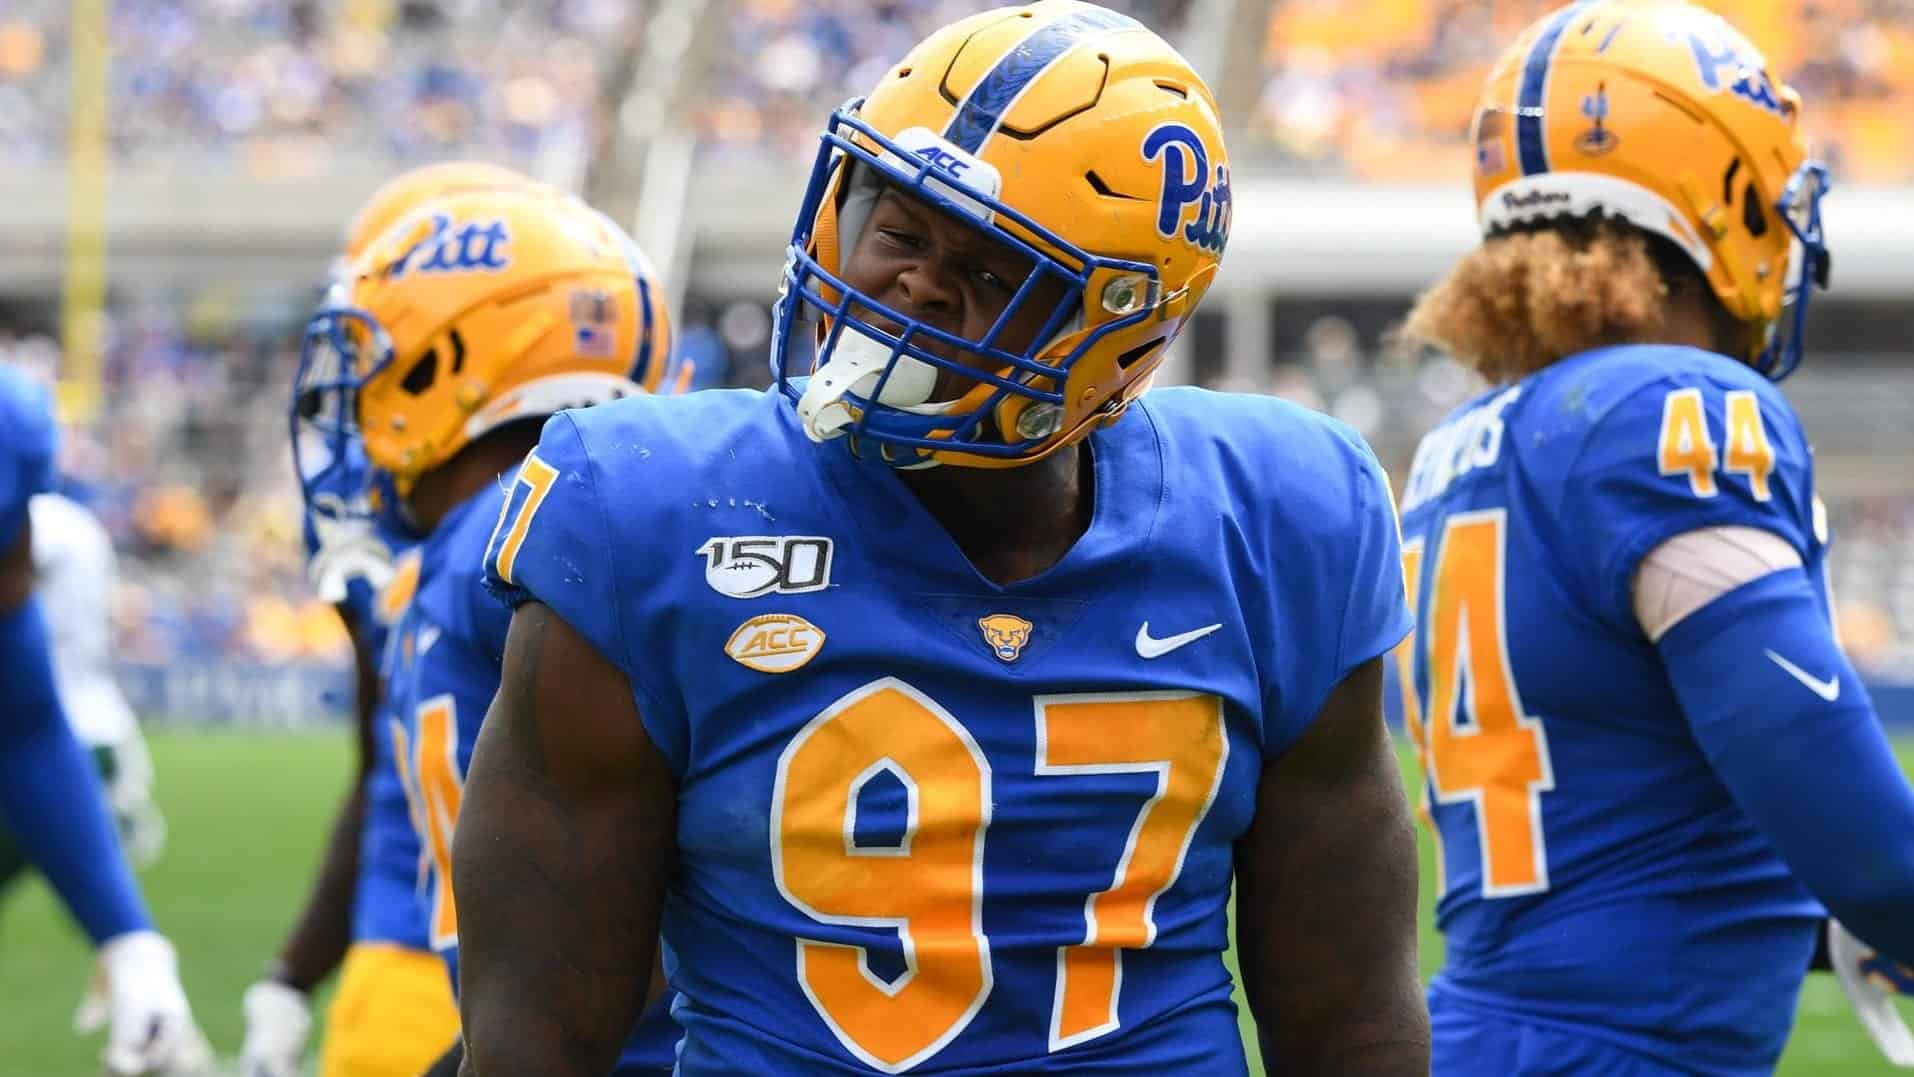 The Pitt Panthers boast the country's most complete defensive line